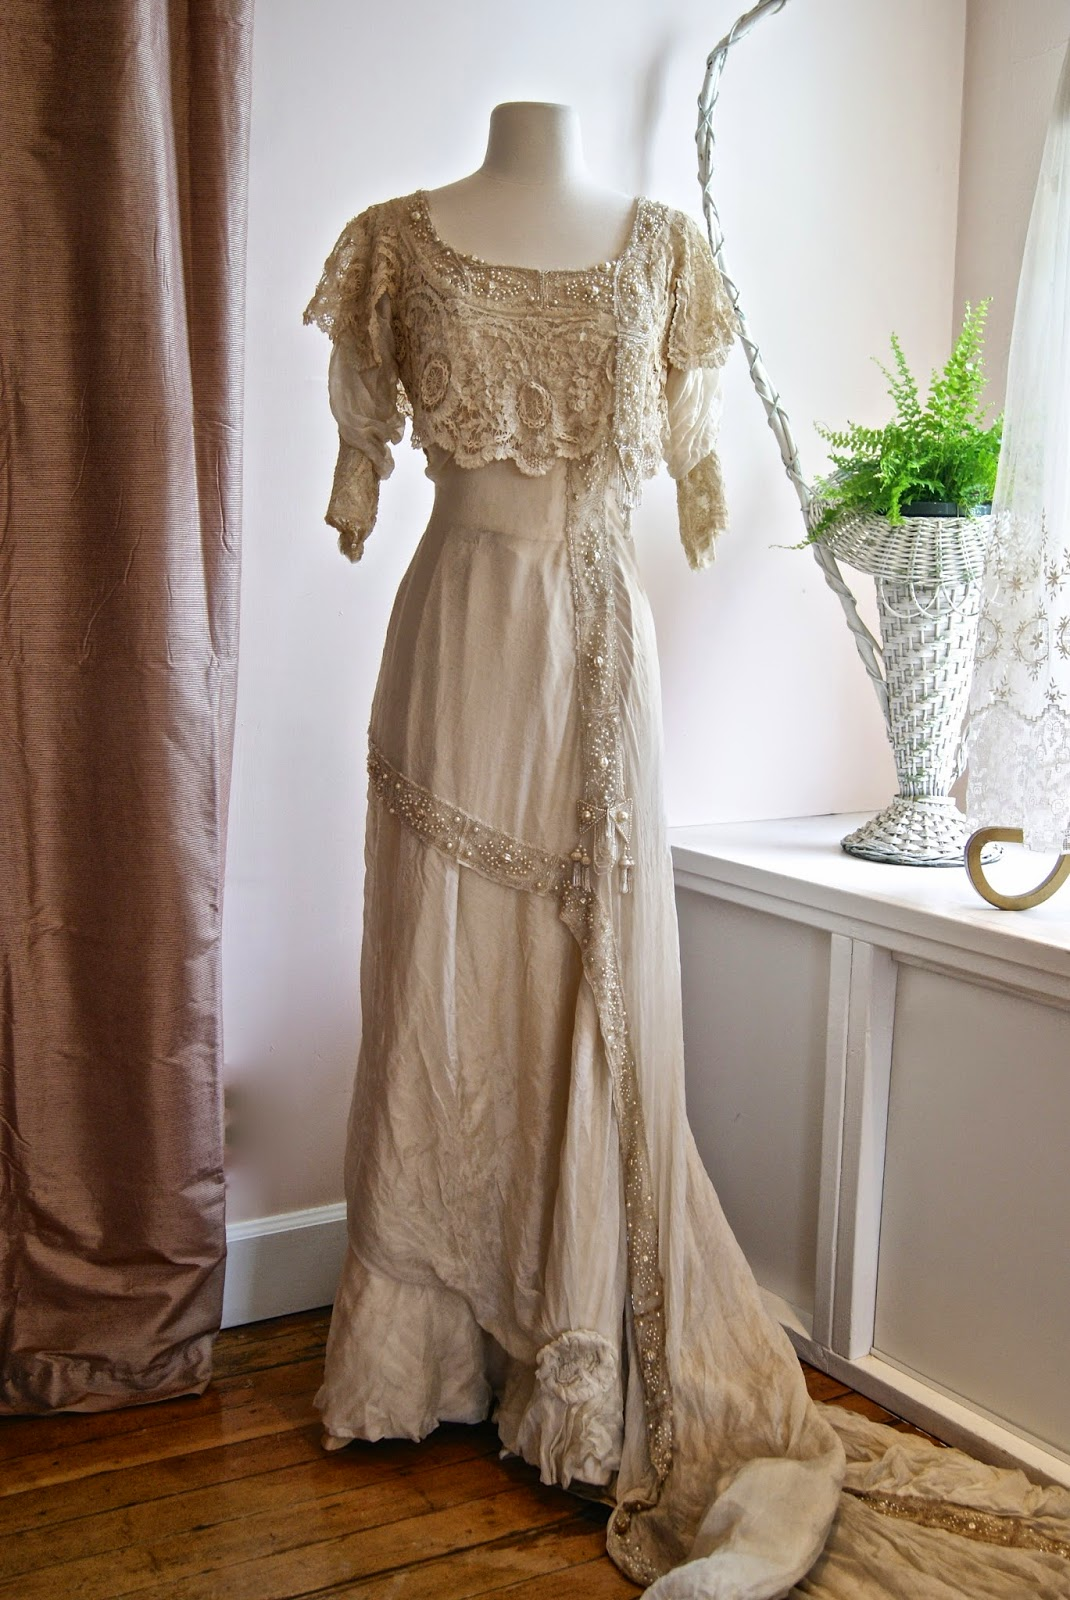 Vintage Style Wedding Dresses Portland : Vintage style wedding dresses portland oregon mother of